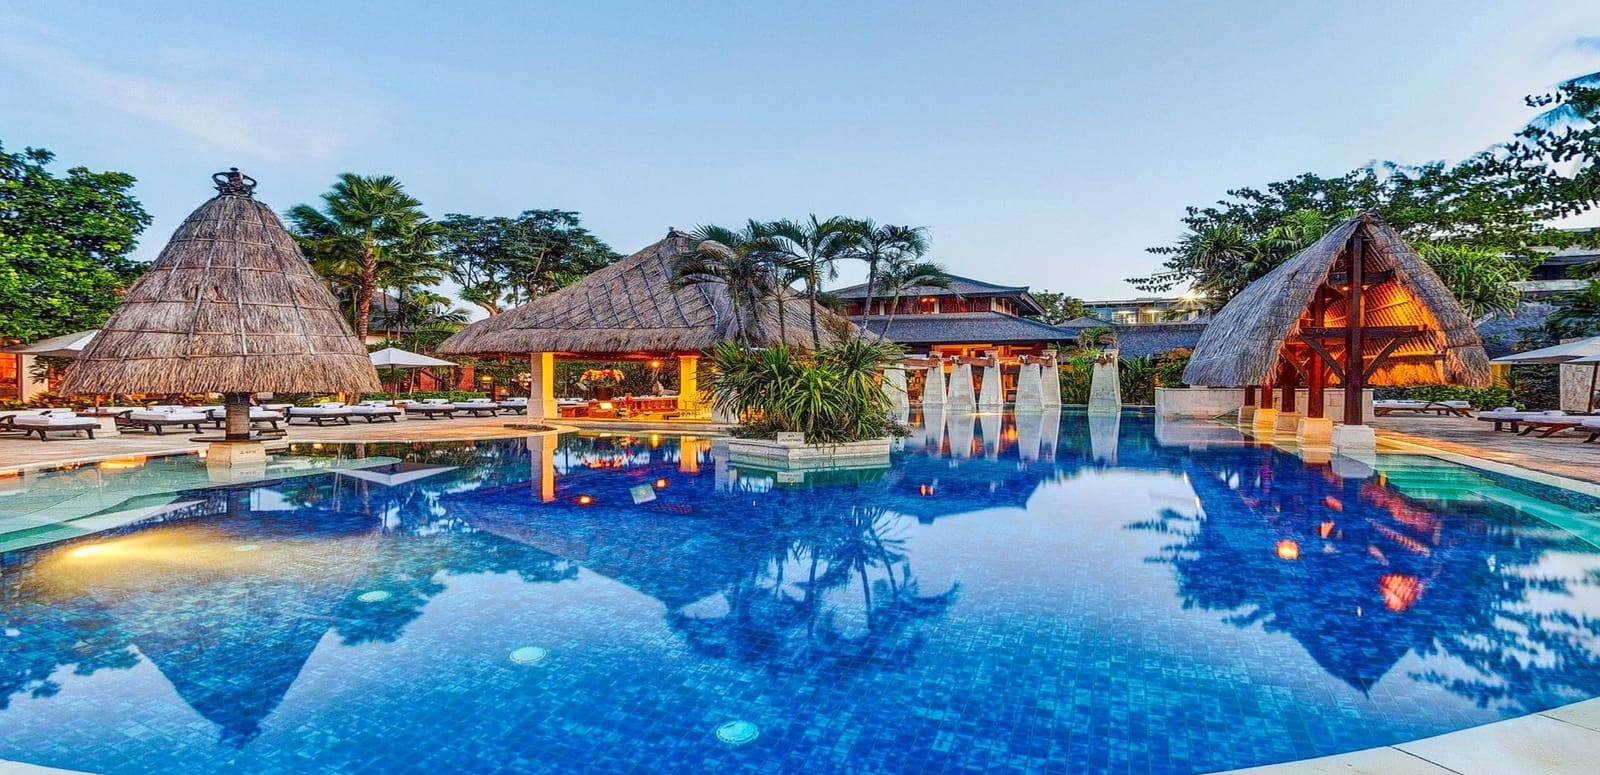 20 Best Resorts In Bali 2019 Photos 2500 Reviews